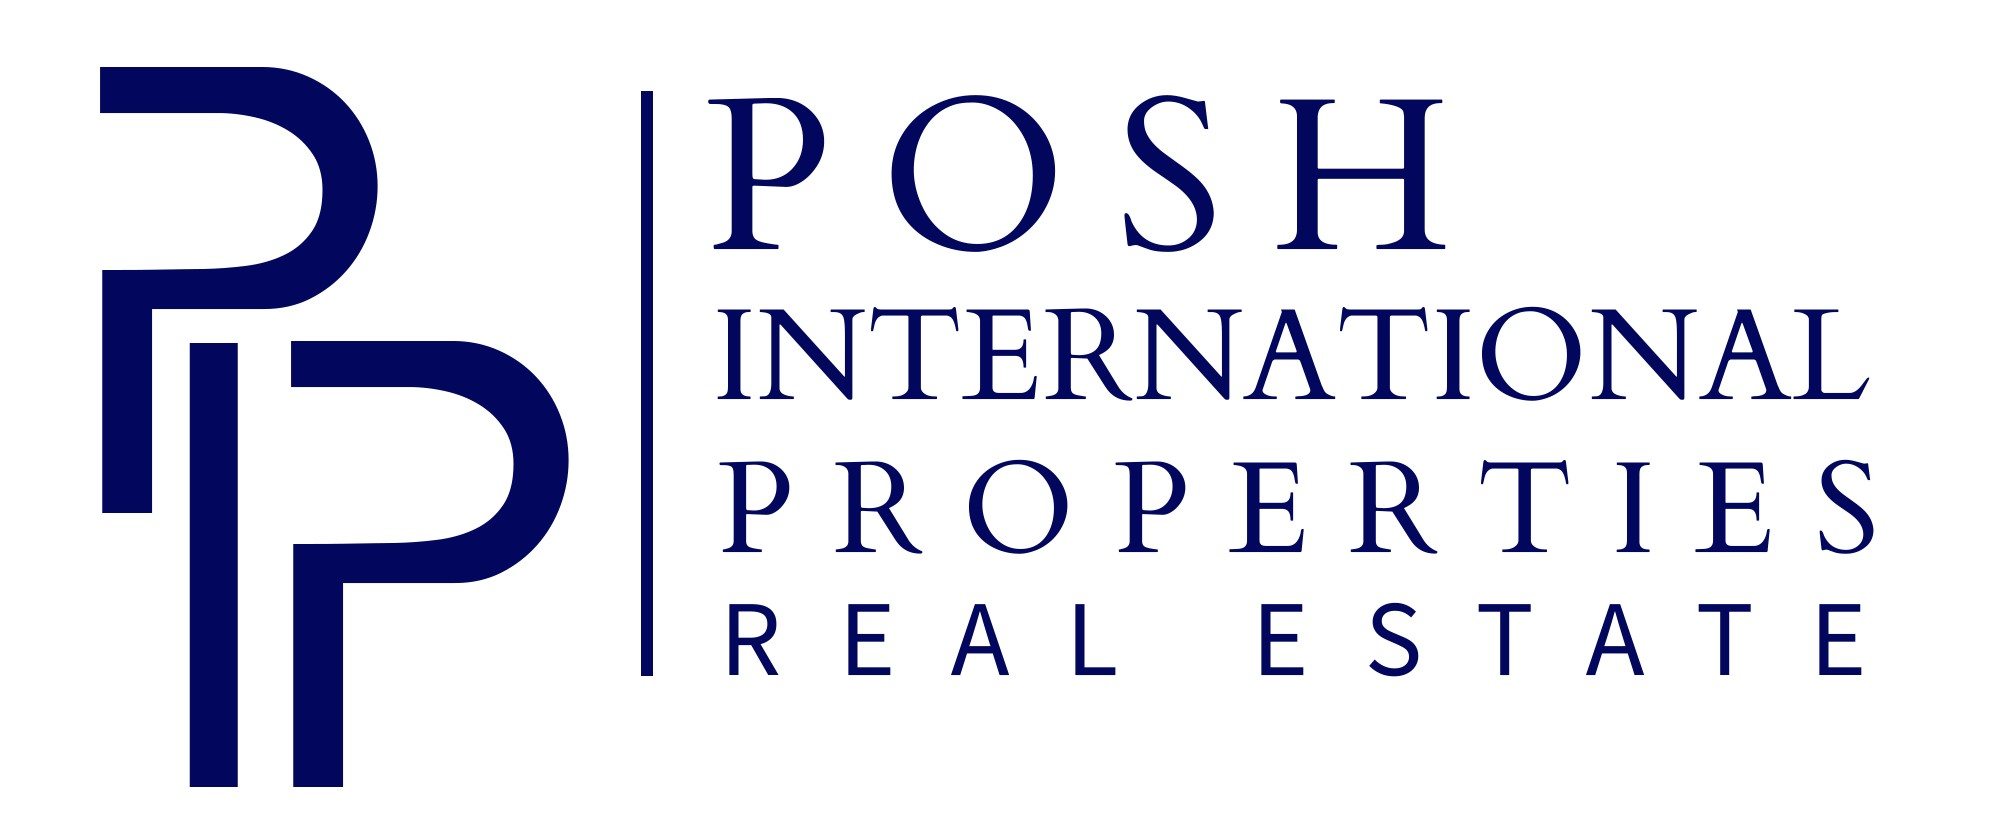 Immobilien Florida - Posh International Properties, Deutscher Immobilienmakler Florida, Makler Florida USA, Naples, Bonita Springs, Estero, Marco Island, Cape Coral, Fort Myers Beach, Fort Myers, Sanibel Island Immobilien, Luxusmakler, Hausmakler, Villenmakler, Luxusimmobilienmakler, Wohnungsmakler